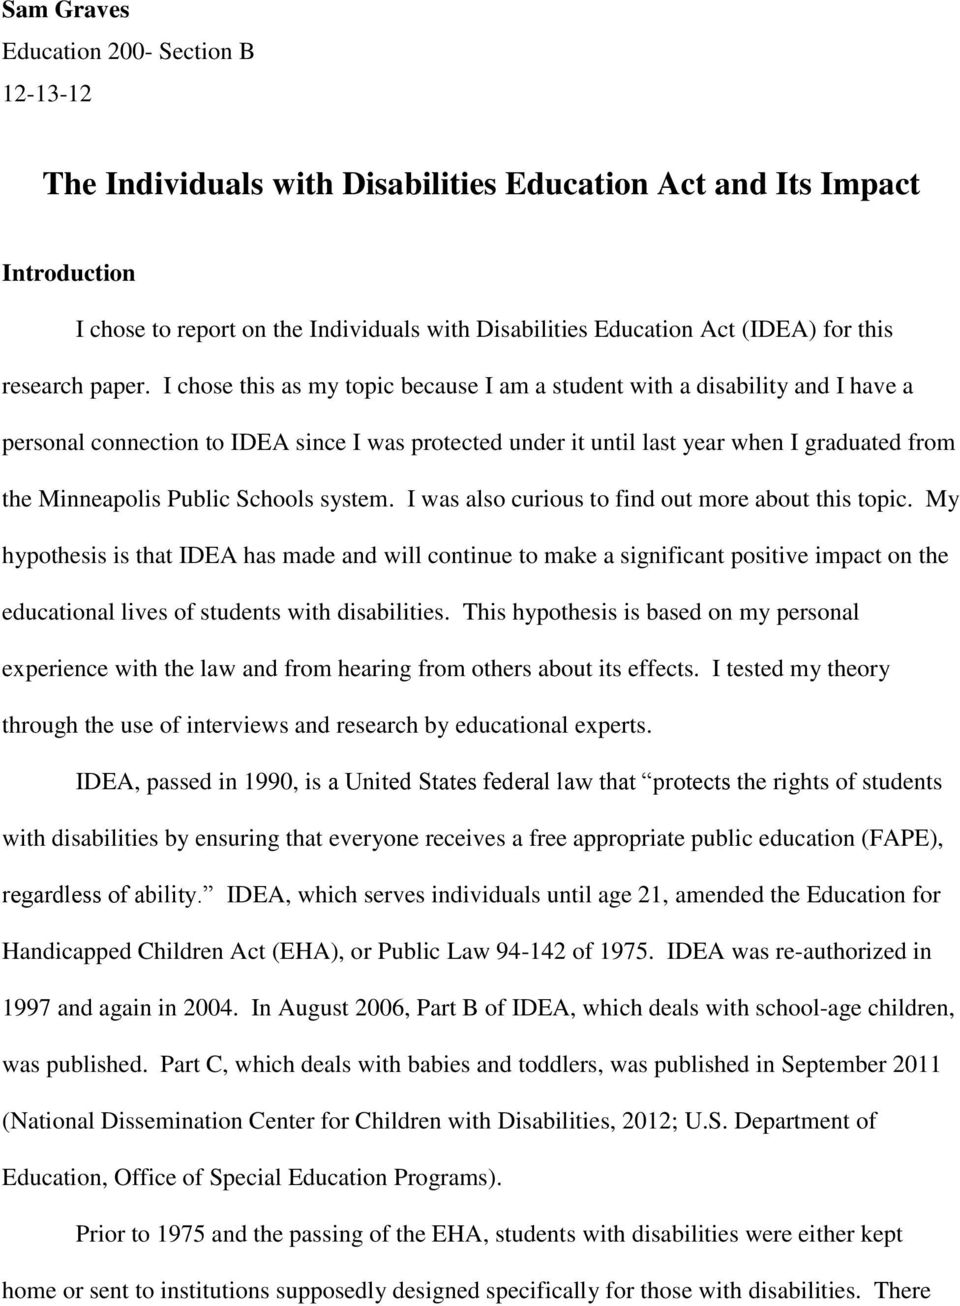 I chose this as my topic because I am a student with a disability and I have a personal connection to IDEA since I was protected under it until last year when I graduated from the Minneapolis Public